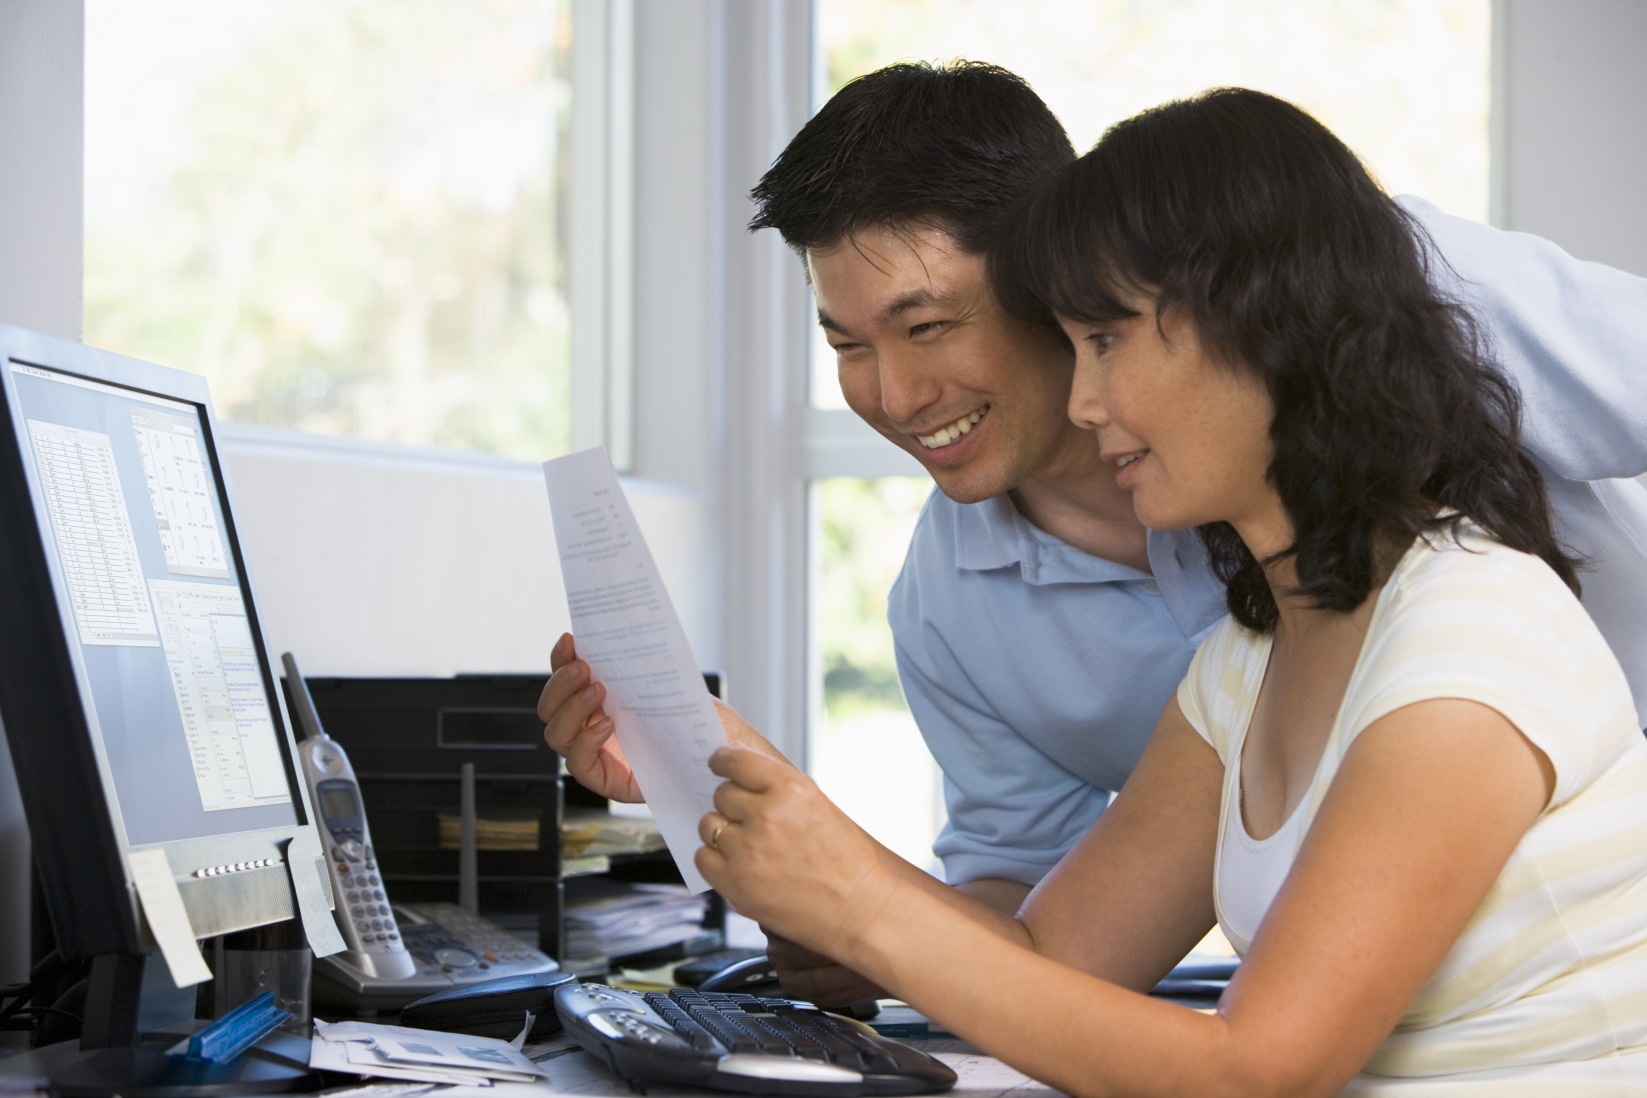 couple-in-home-office-with-computer-and-paperwork-smiling_rFOjoPCBi.png